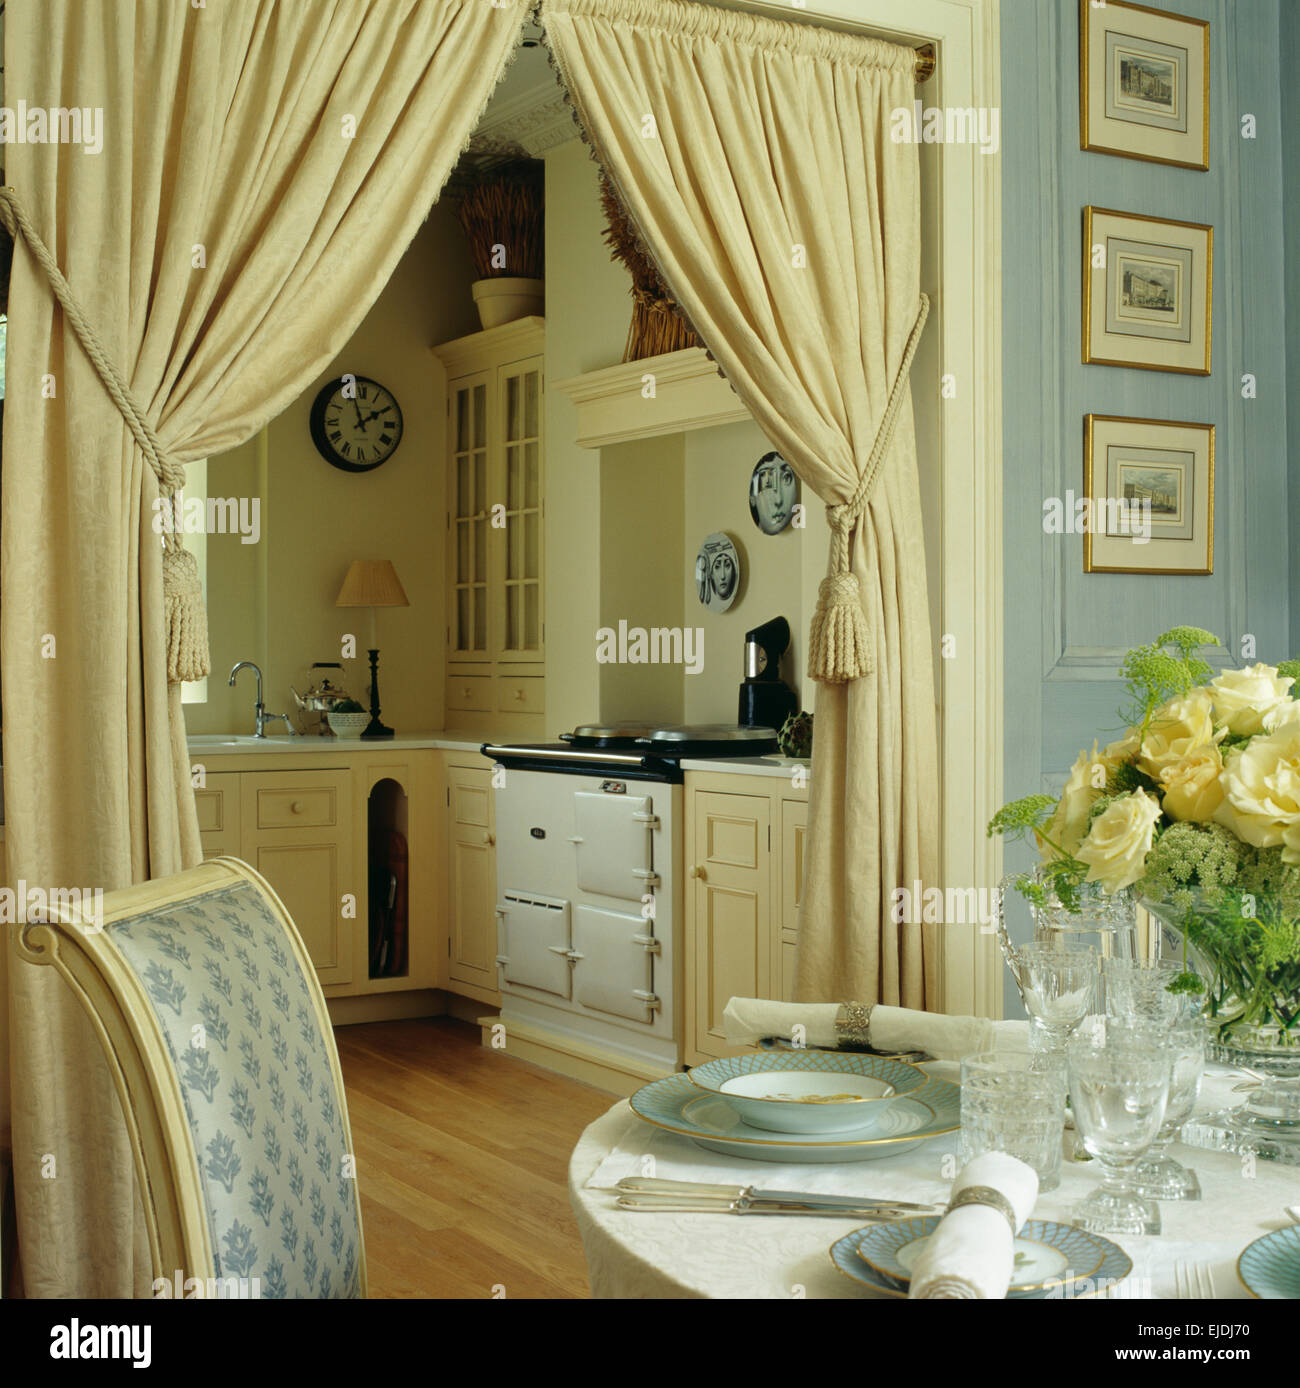 Table Set For Lunch In Small Blue Dining Room With Cream Curtains